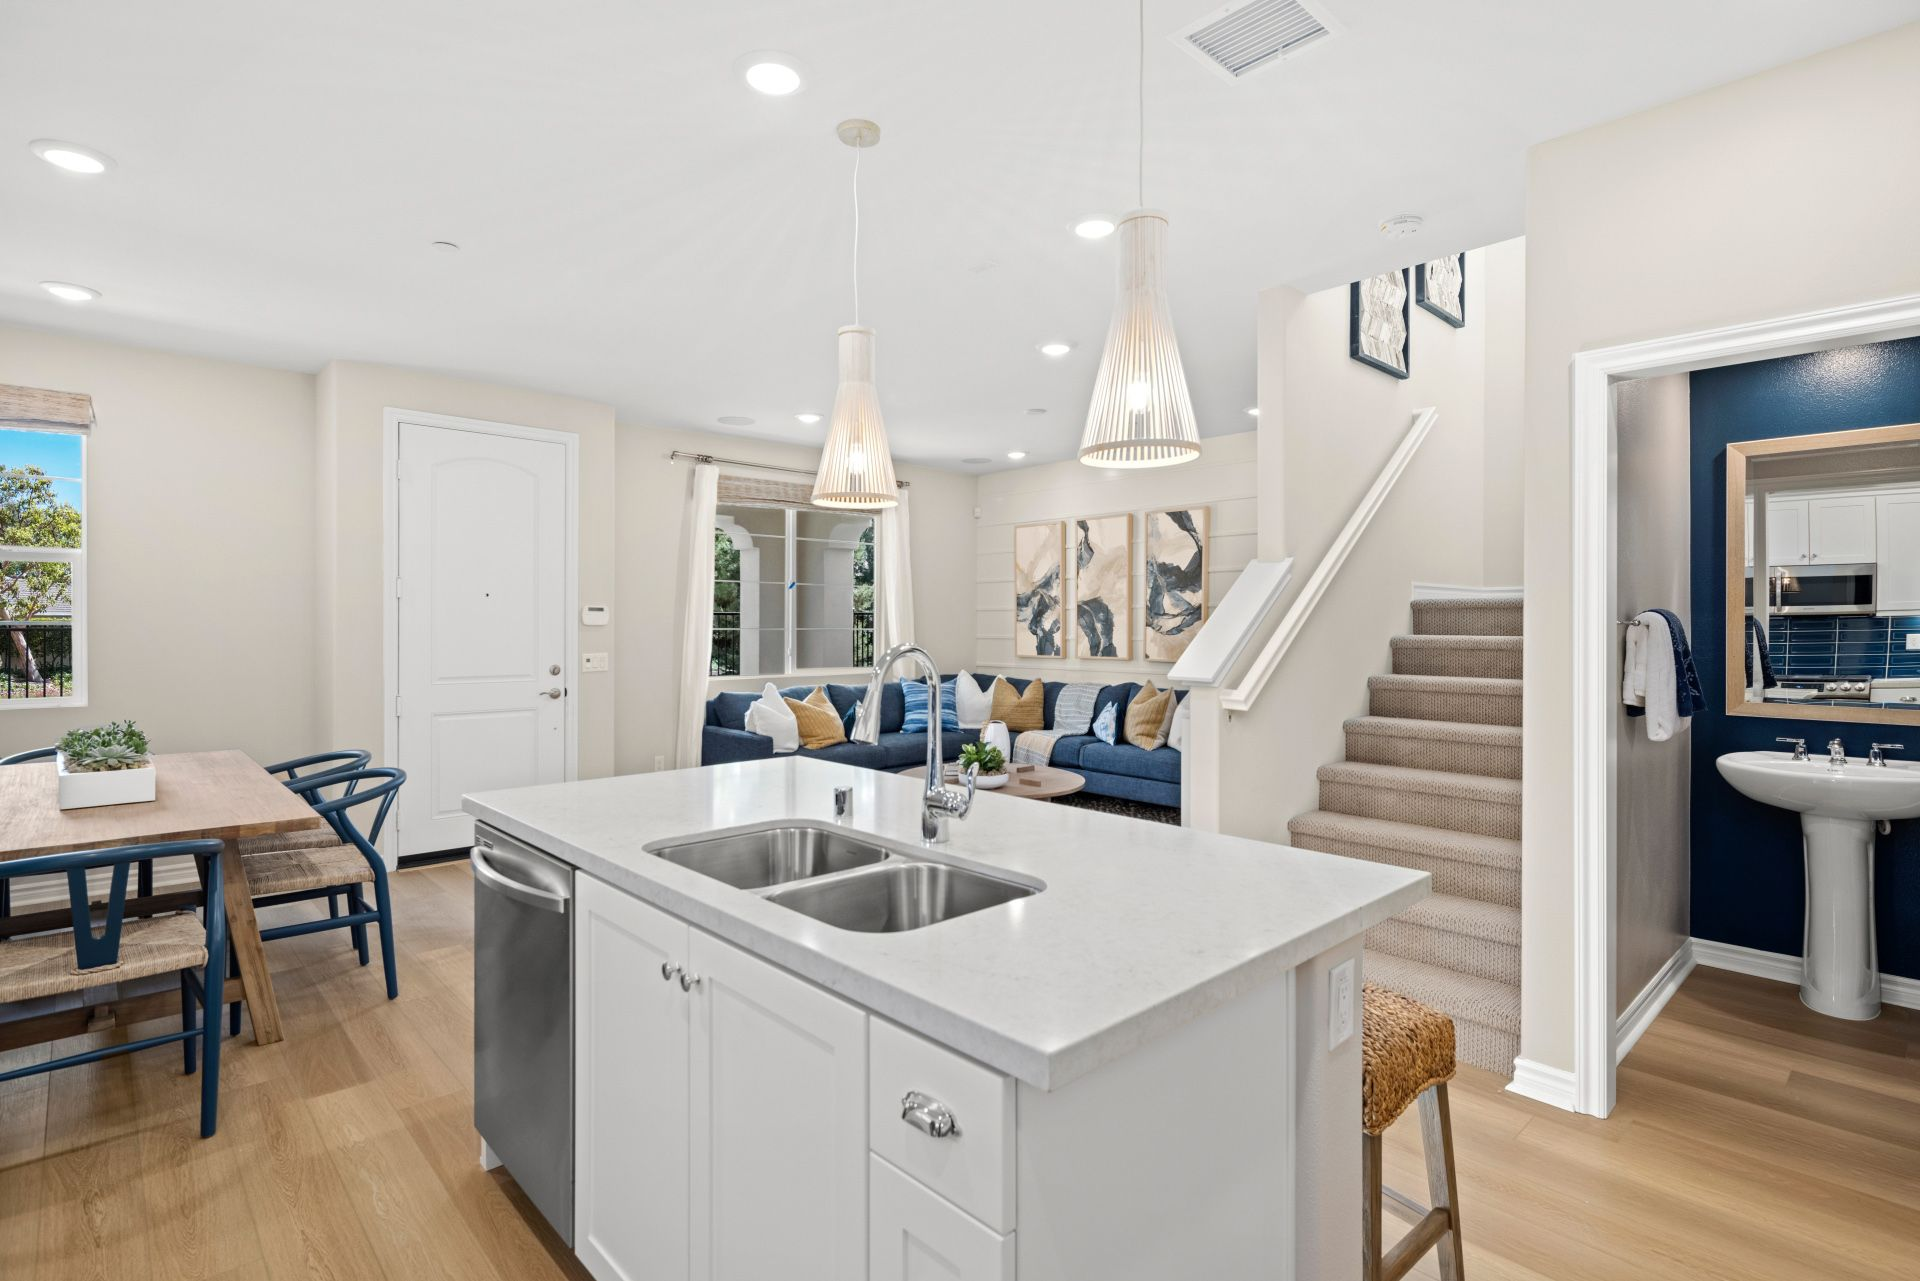 Kitchen featured in the Plan 2 By Brandywine Homes in Orange County, CA